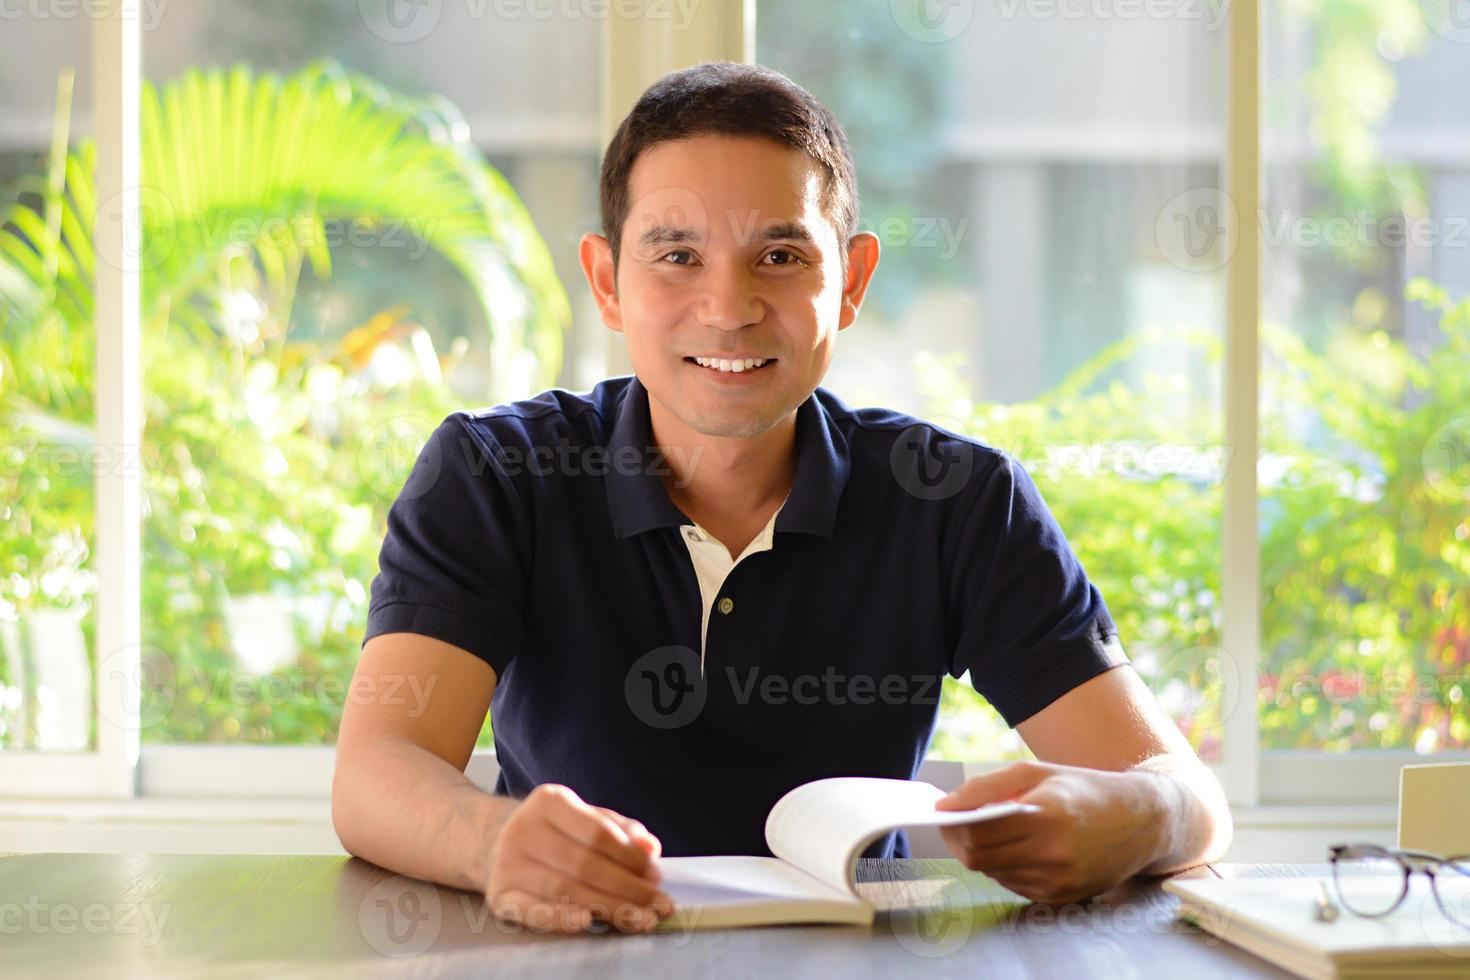 Smiling man with book opened on the table photo